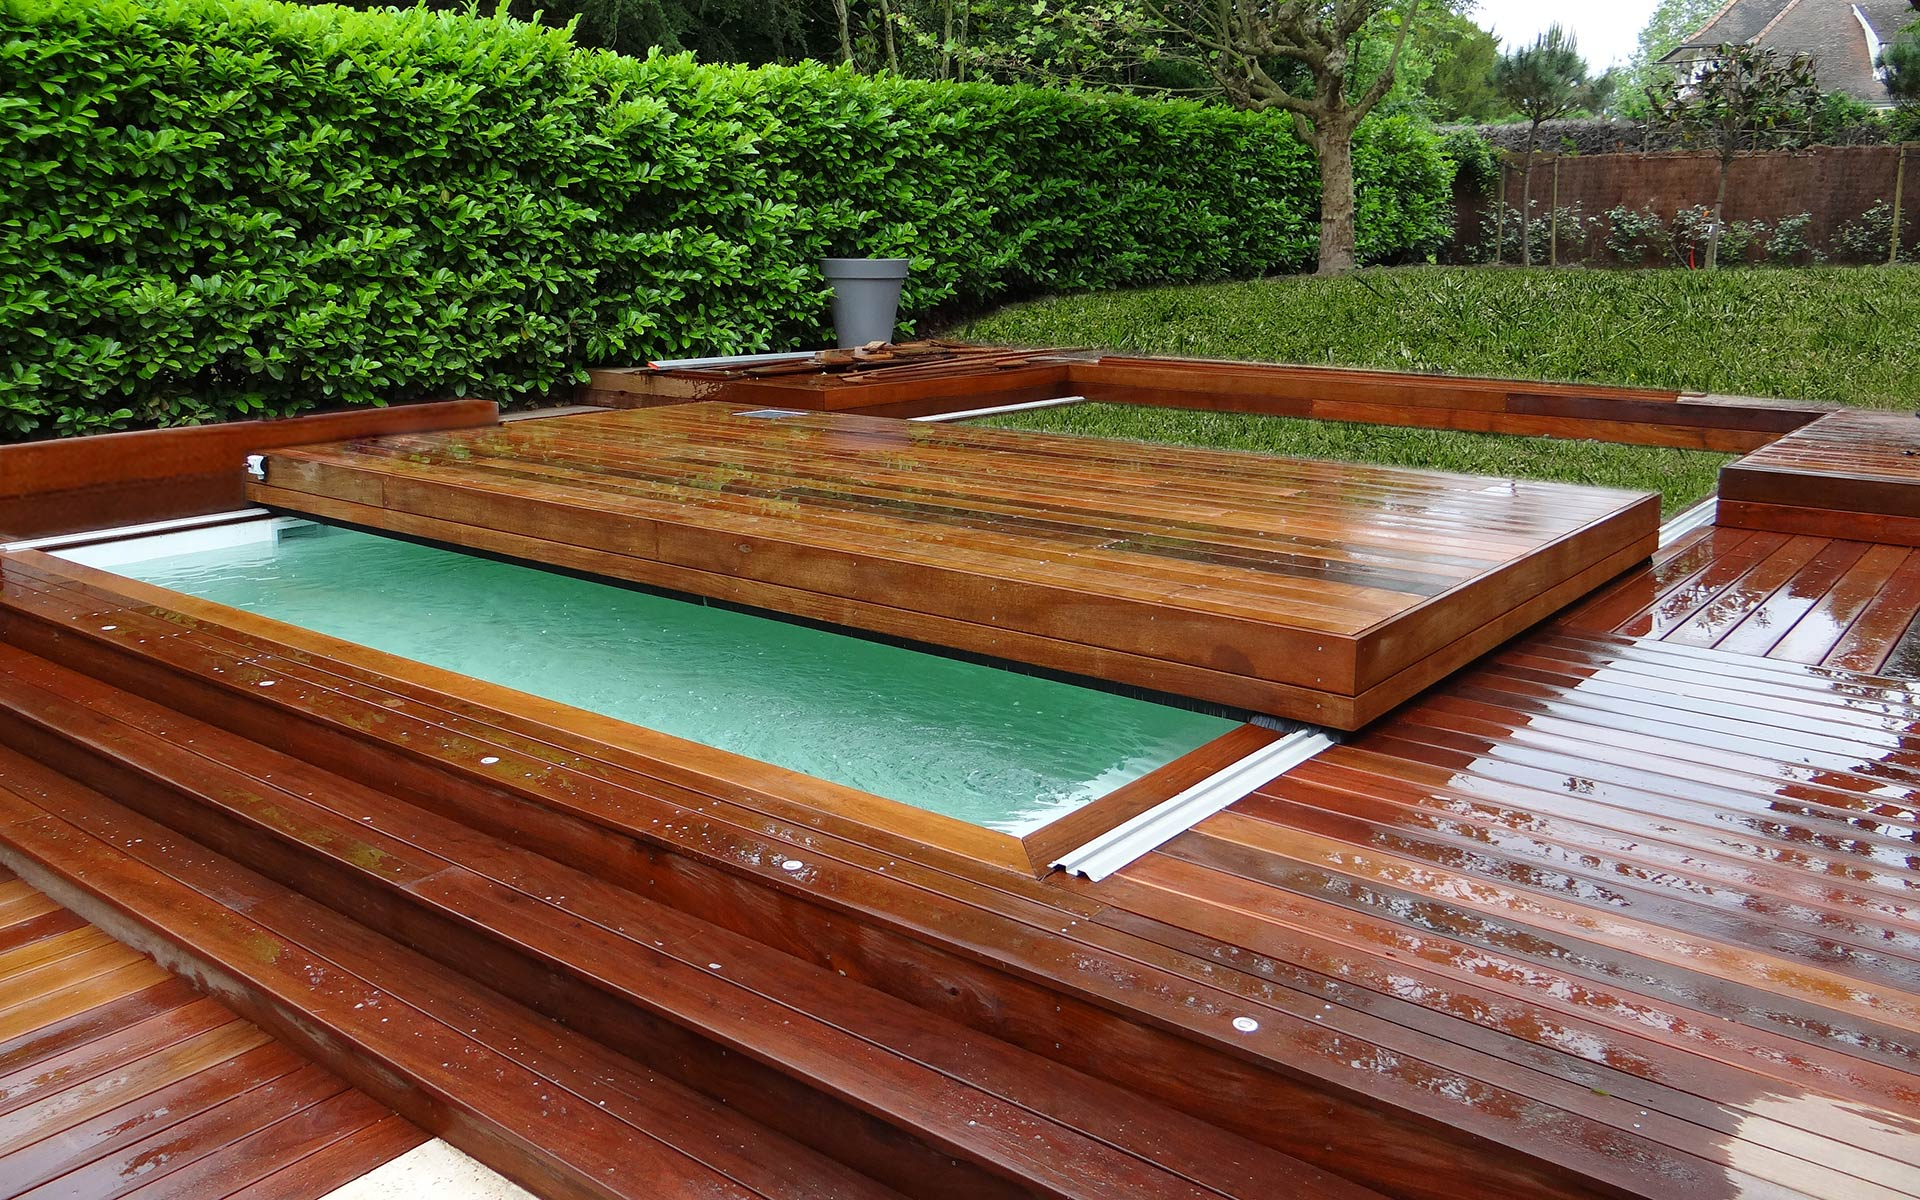 Terrasse mobile fond mobile pour piscine hidden pool for Piscine couverture mobile